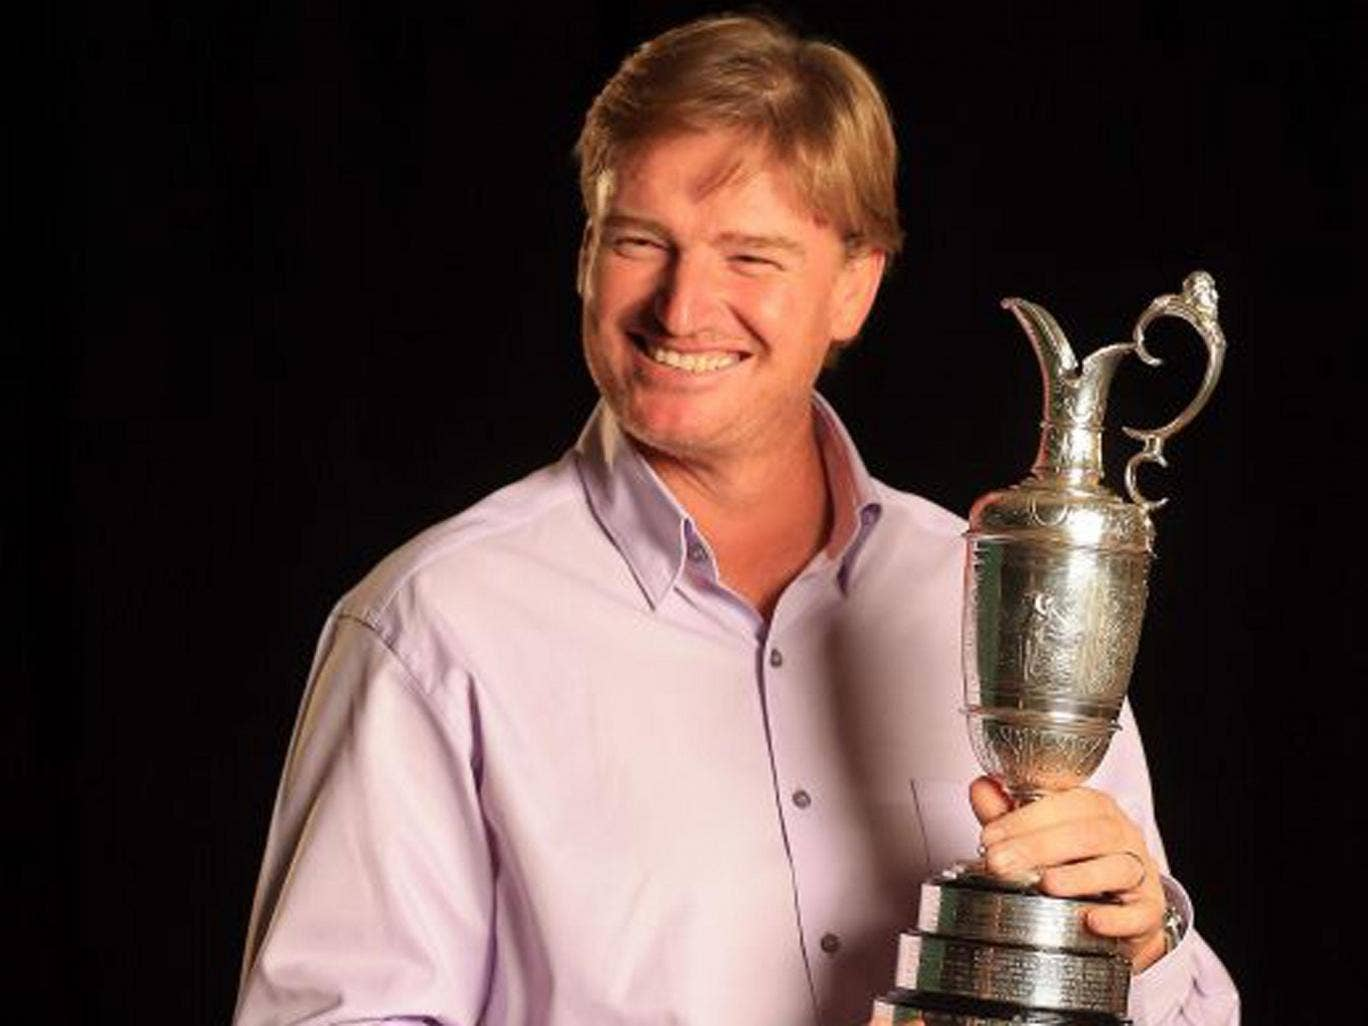 Ernie Els returns to Muirfield next week, scene of his first Open Championship triumph in 2002